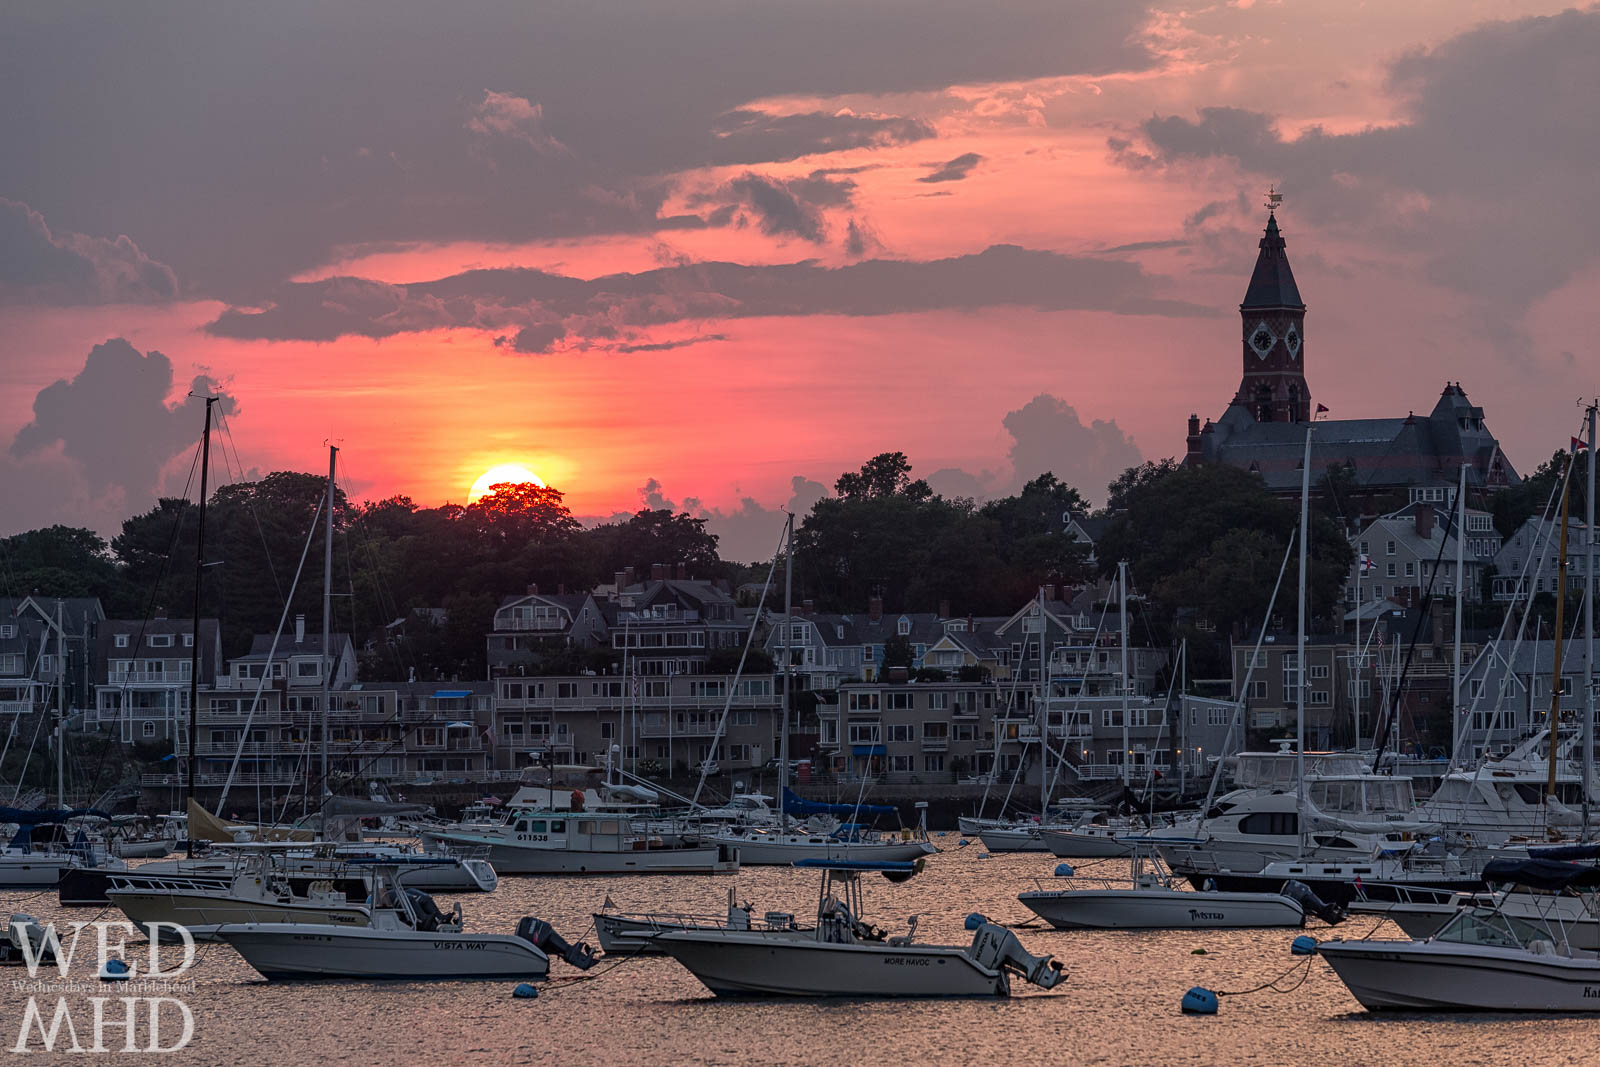 A red sky forms at sunset over Marblehead Harbor during the warmer days of Summer